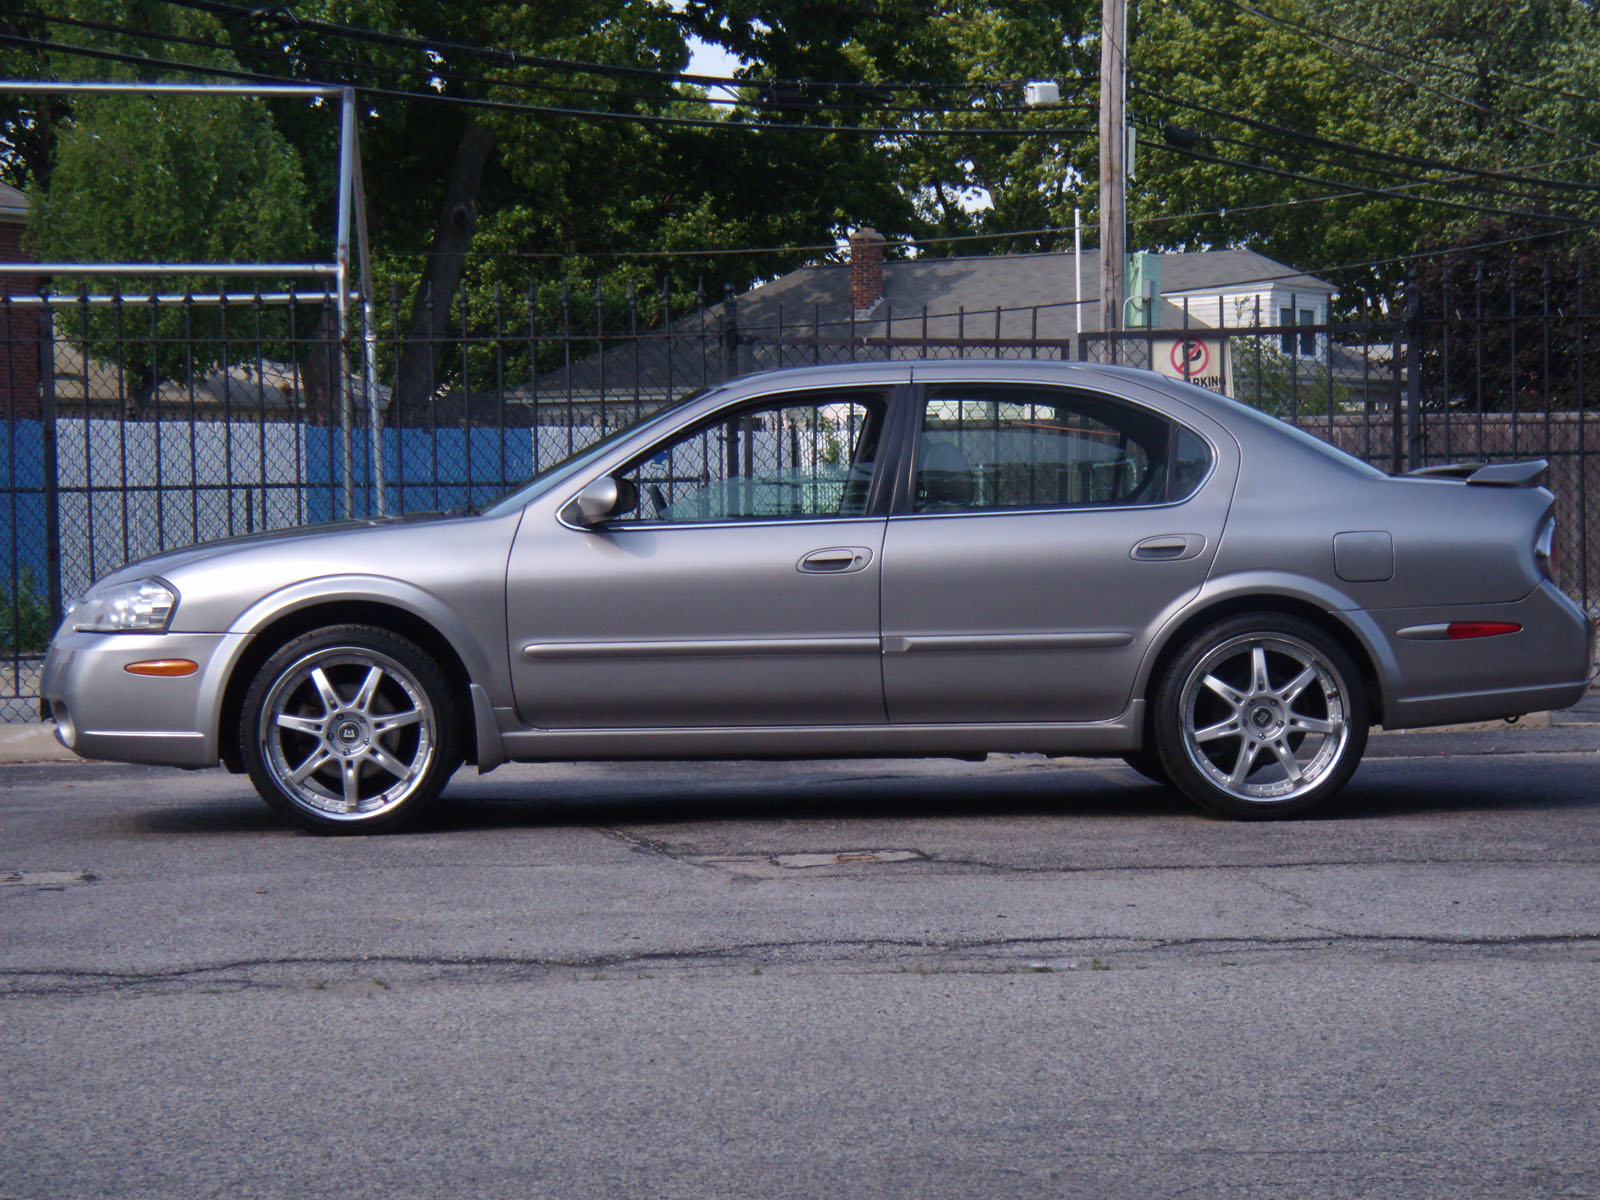 2002 nissan maxima turbo submited images